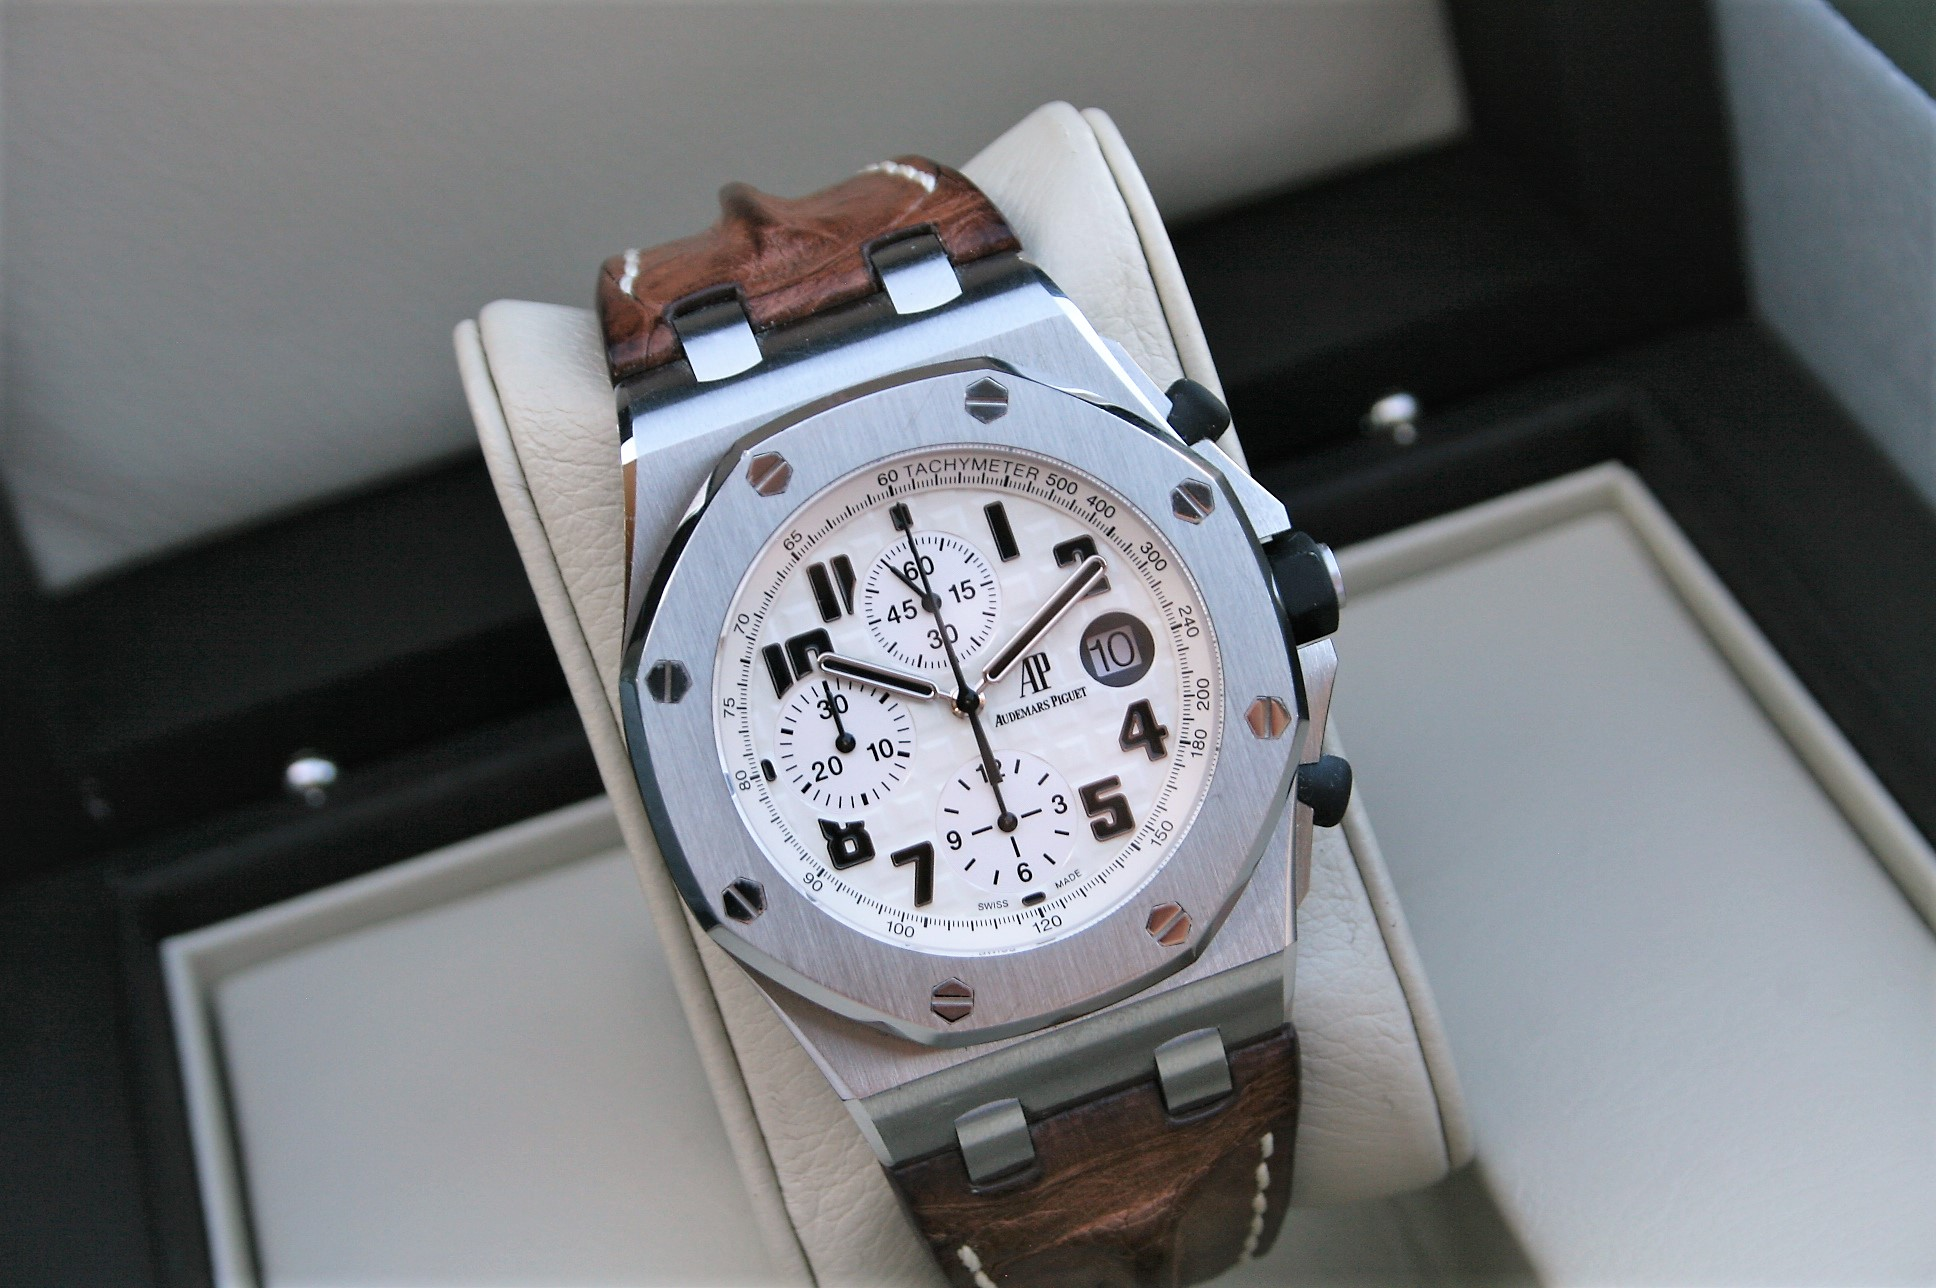 Audemars Piguet Roo Safari Royal Oak Offshore 26170st Oo D091cr 01